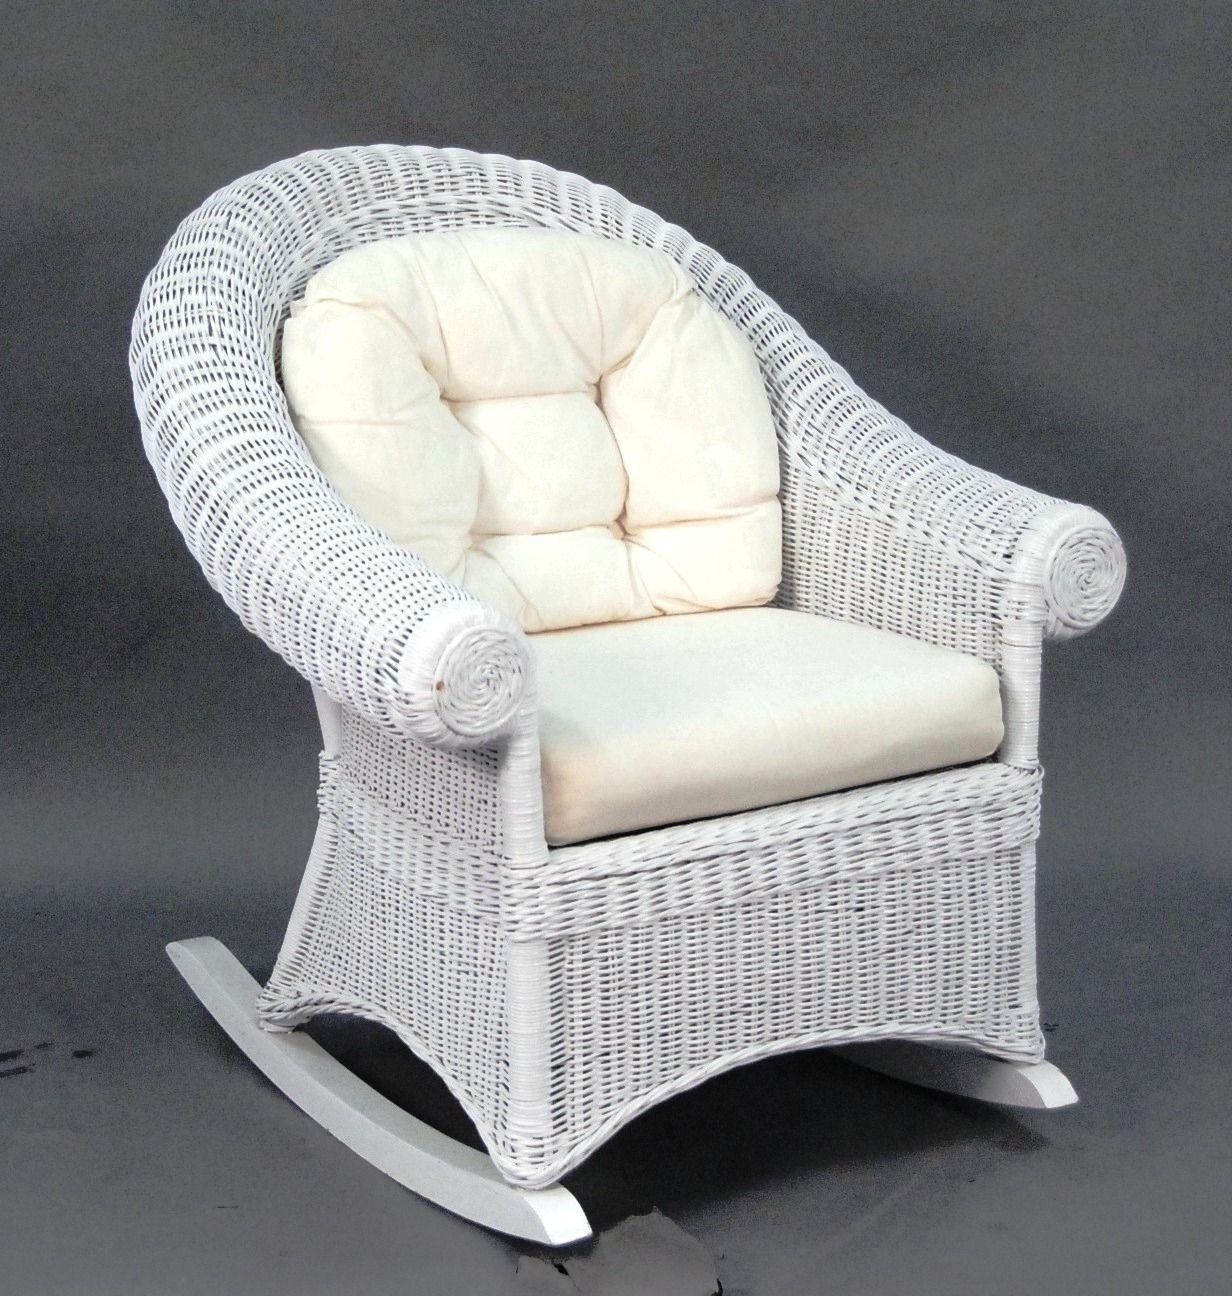 White Wicker Rocking Chairs In 2018 Choosing A White Wicker Rocking Chair – Http://www (View 11 of 15)